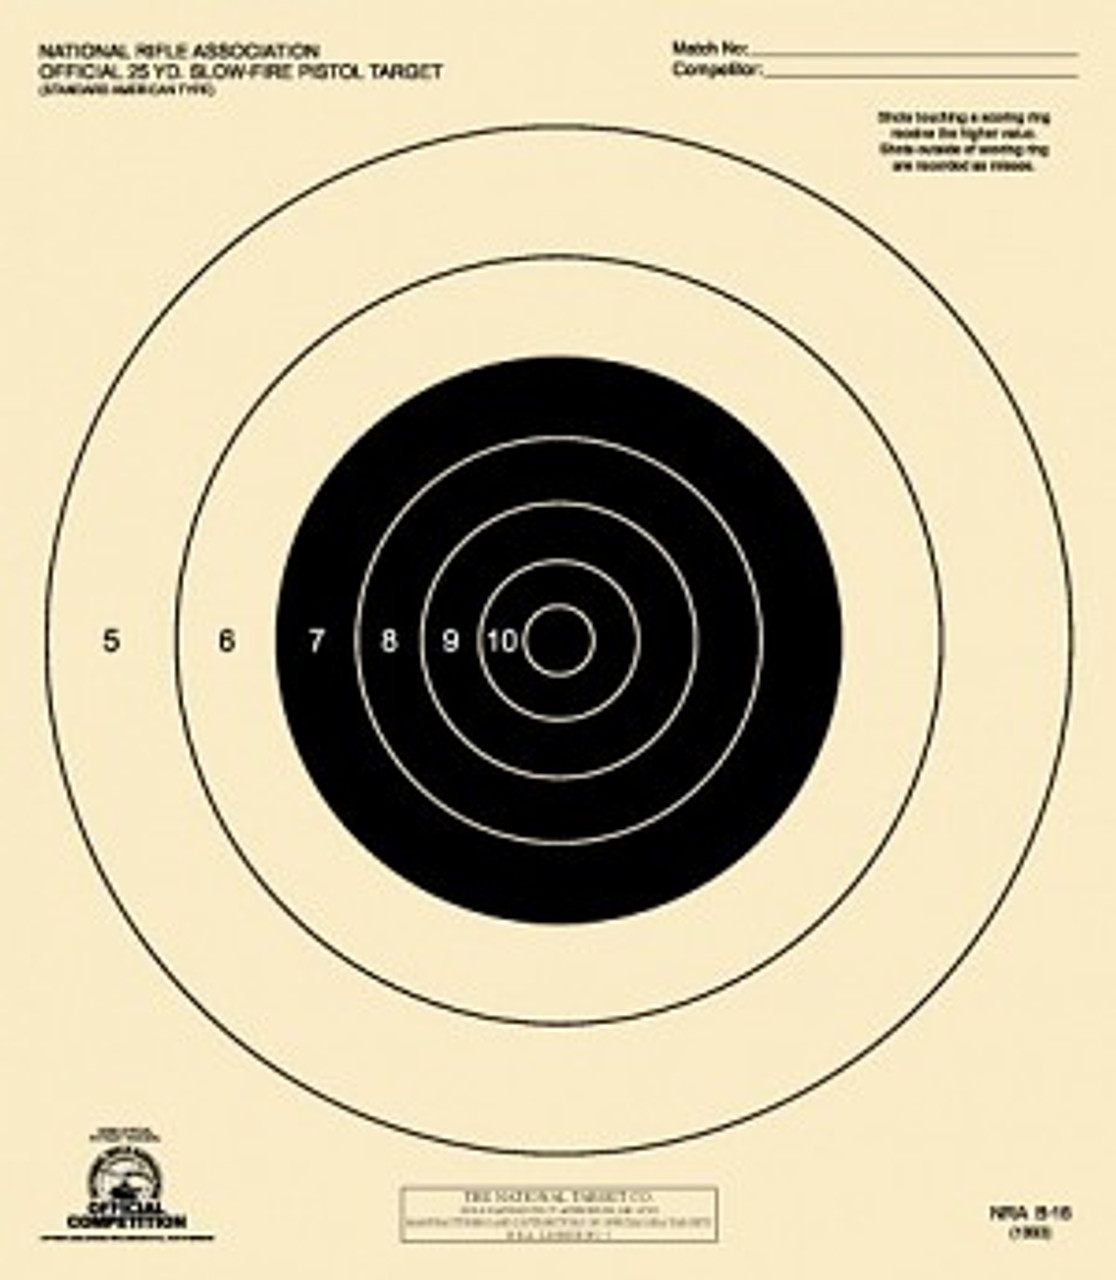 photo regarding Nra B-8 Target Printable known as B-16 - Formal NRA - Compeion Pistol Focus (100 Concentrate Pack)